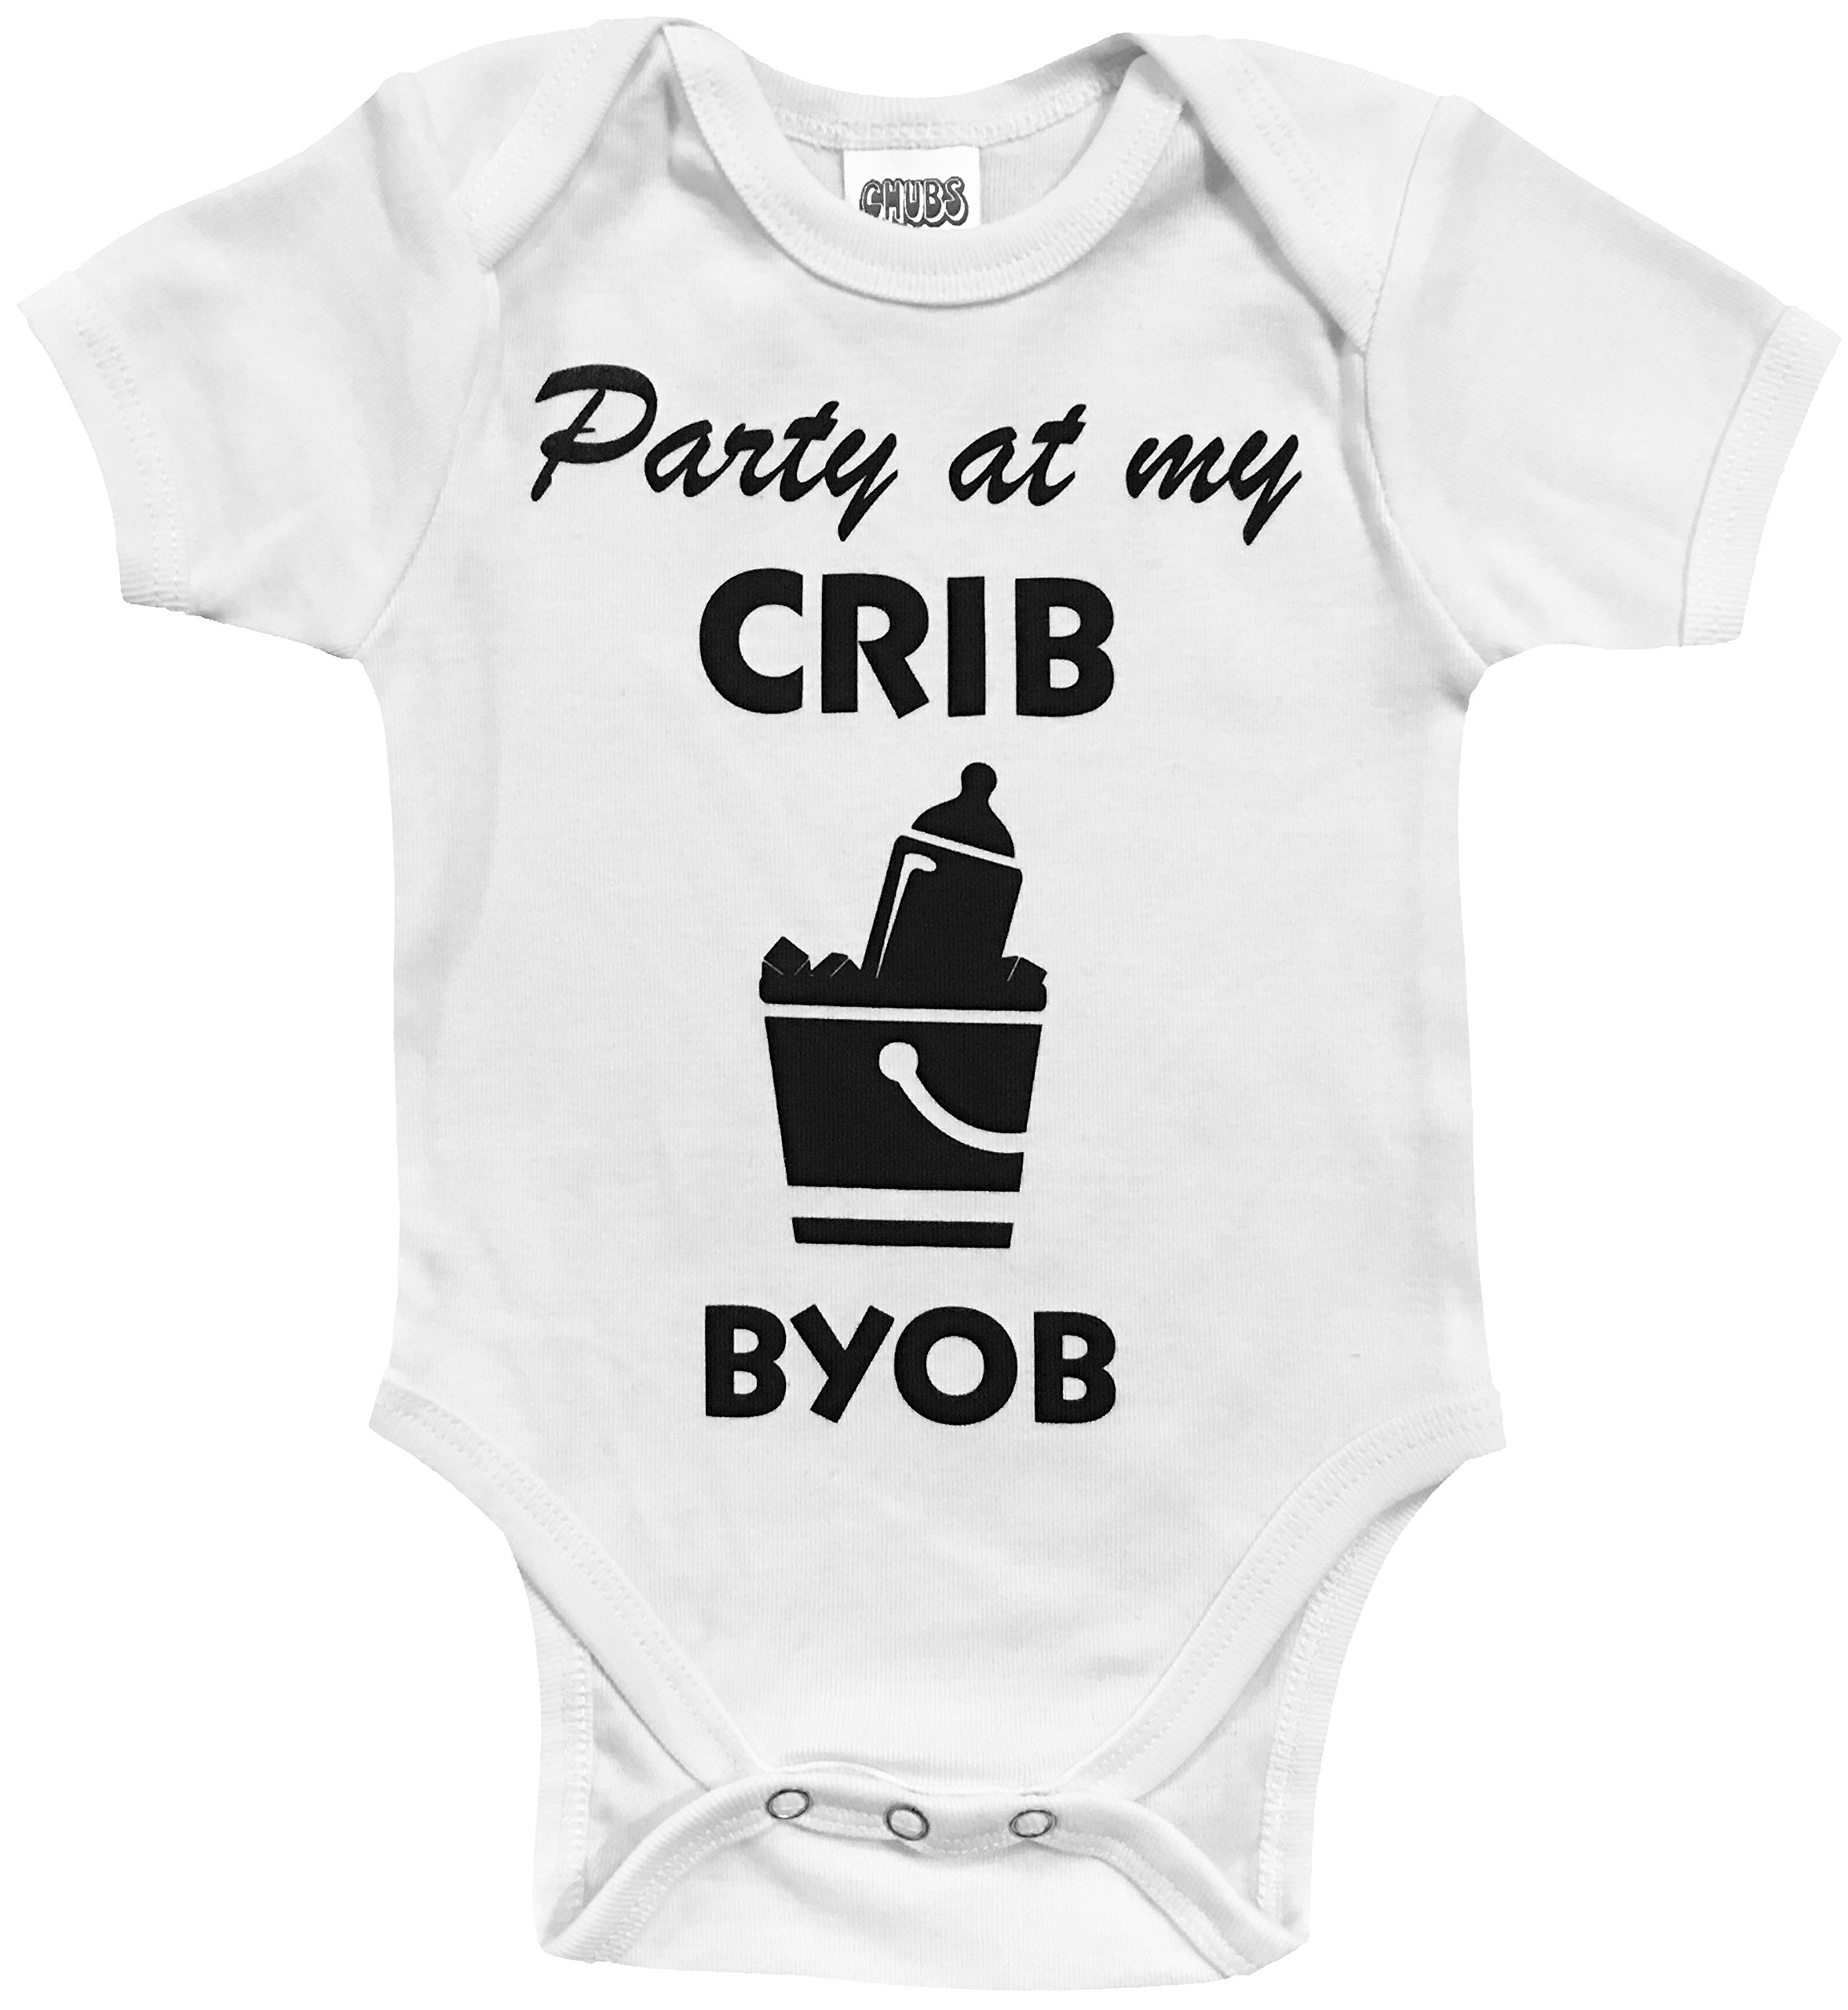 CHUBS Party At My Crib Bodysuit, Our Funny Baby Clothes Are Proudly Made In The USA! (6-9 Months)